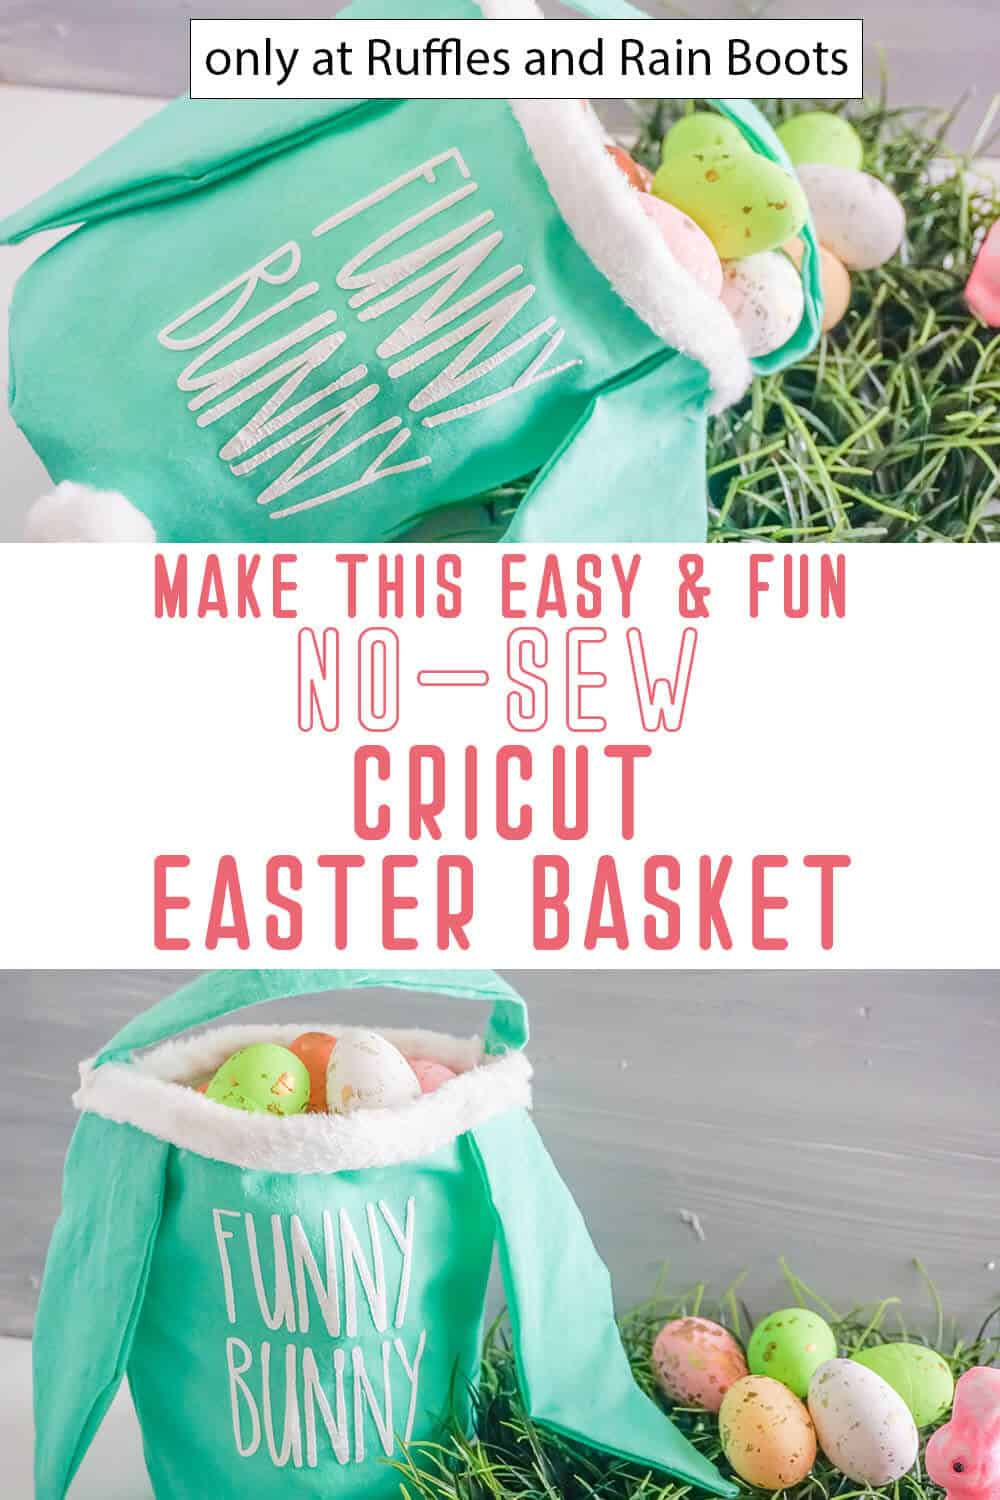 photo collage of no-sew DIY easter basket cricut craft with text which reads make this easy & fun no-sew cricut easter basket